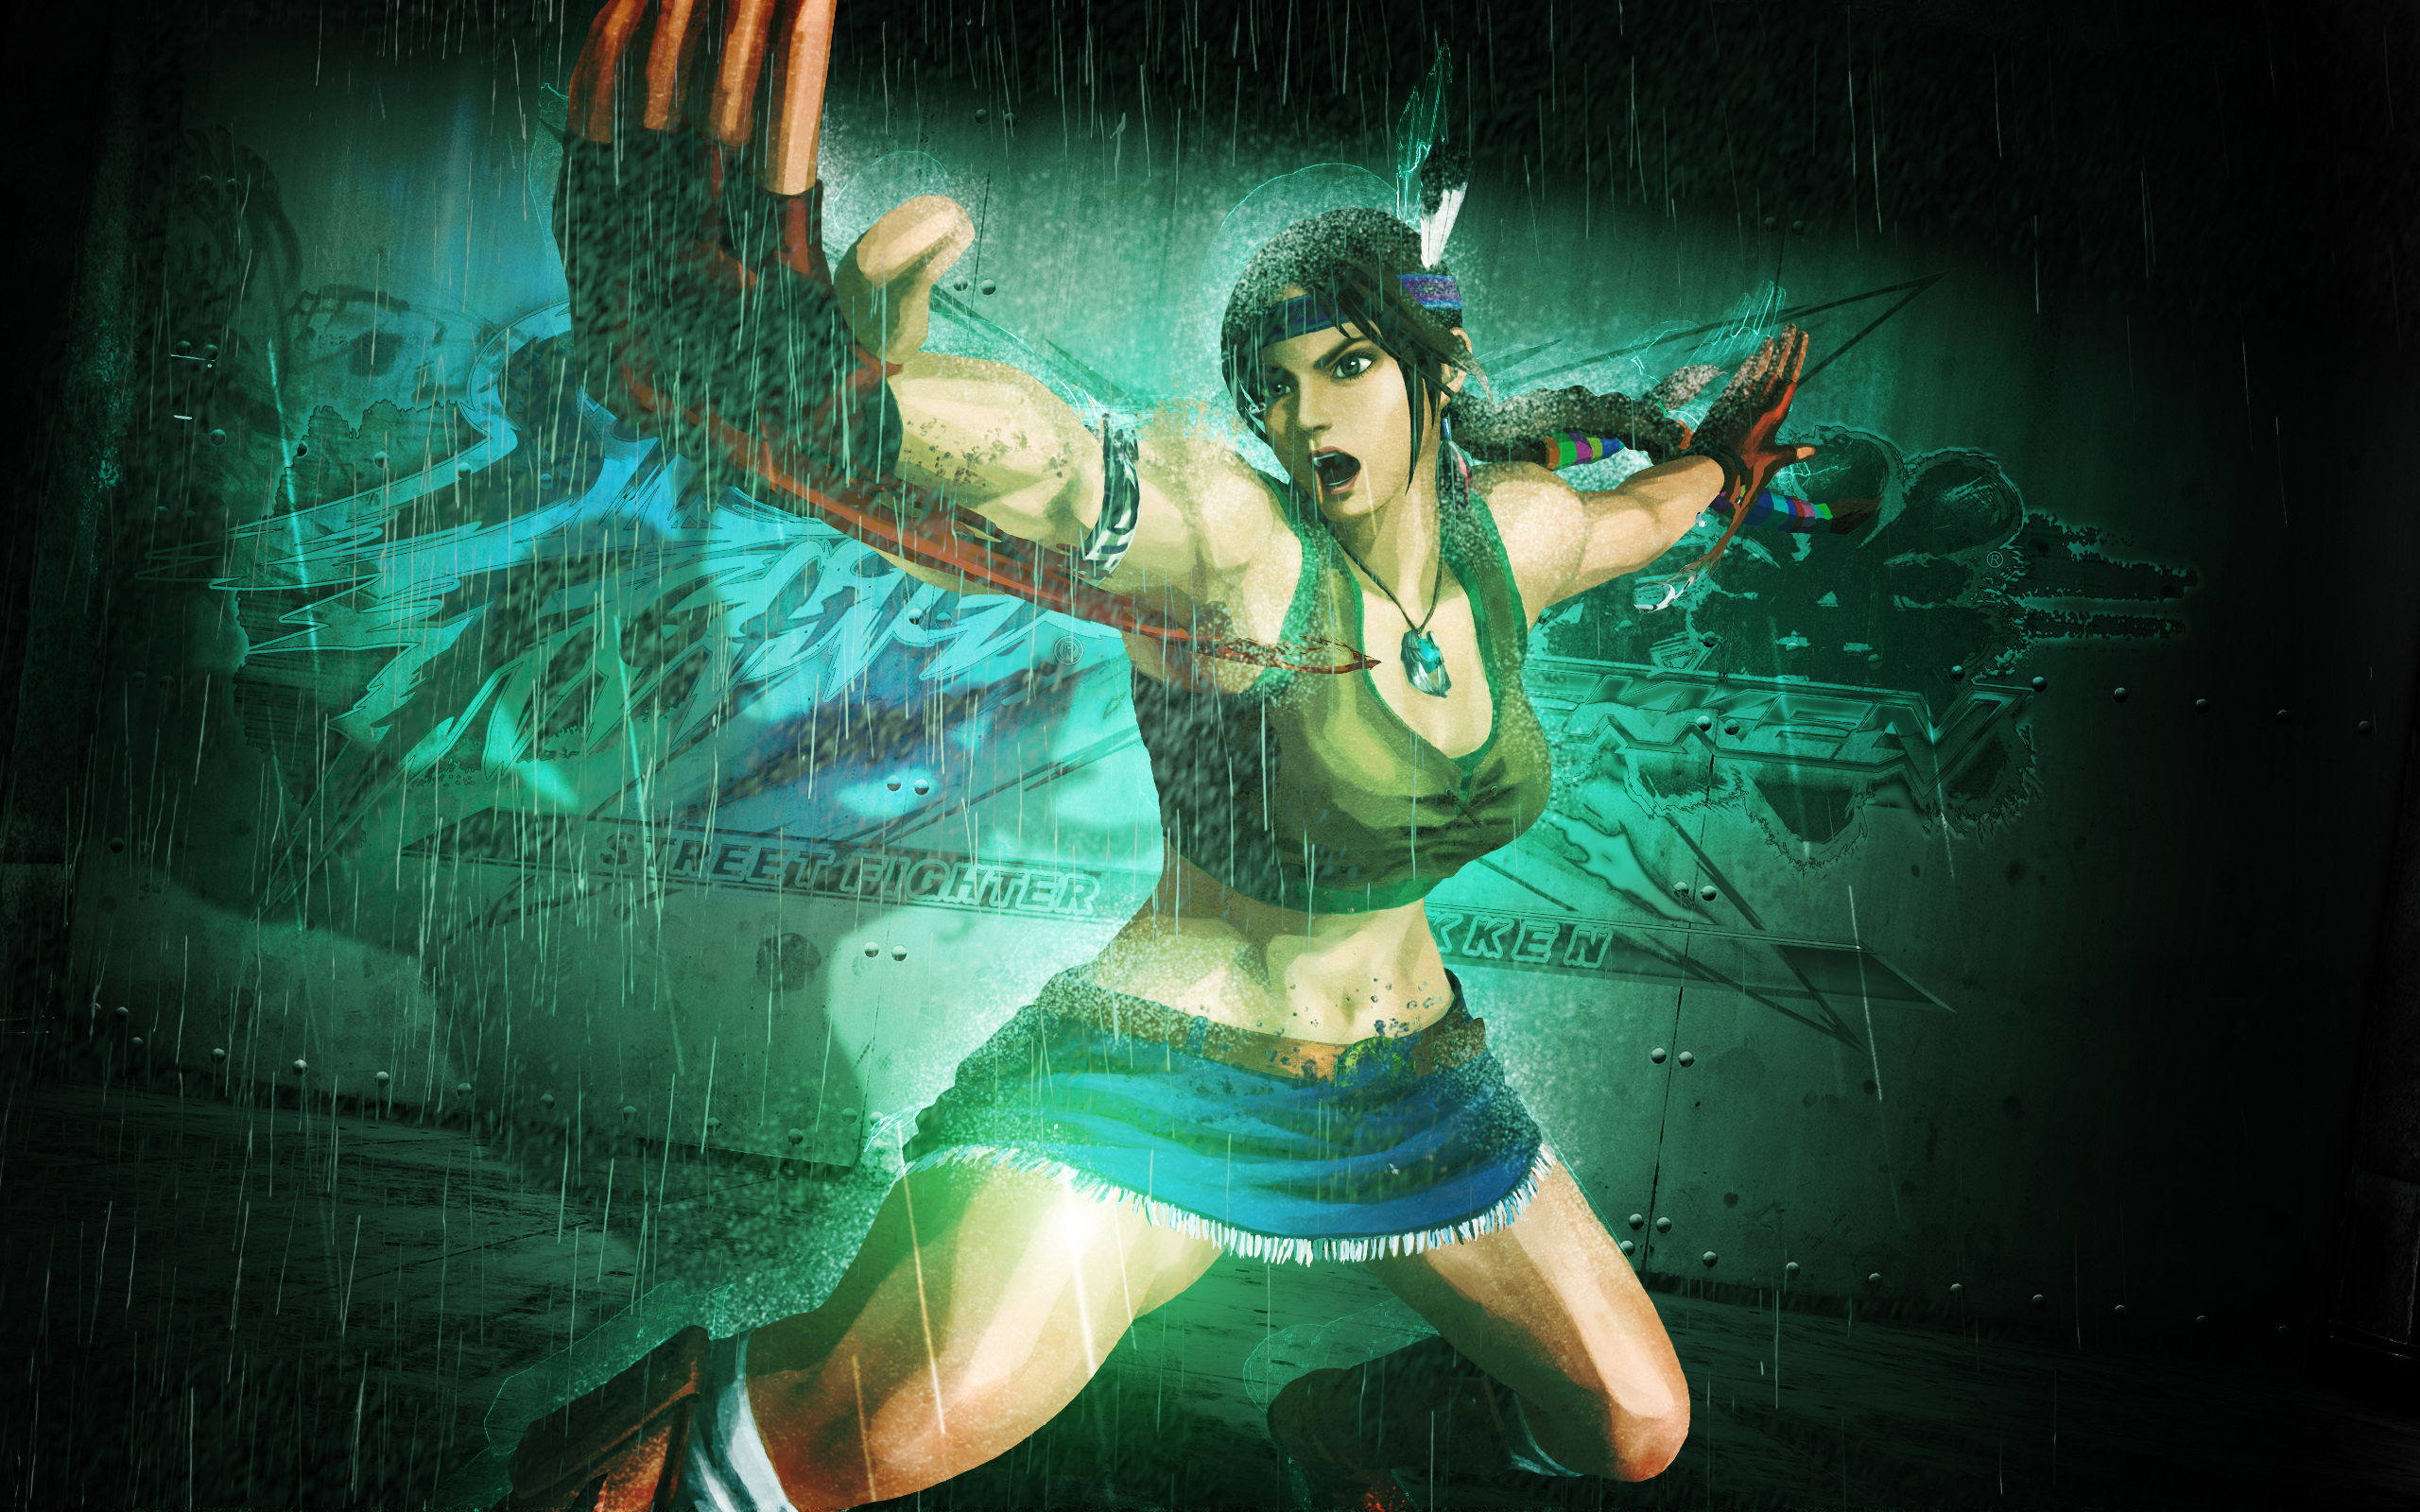 Julia Chang in Tekken 575.55 Kb